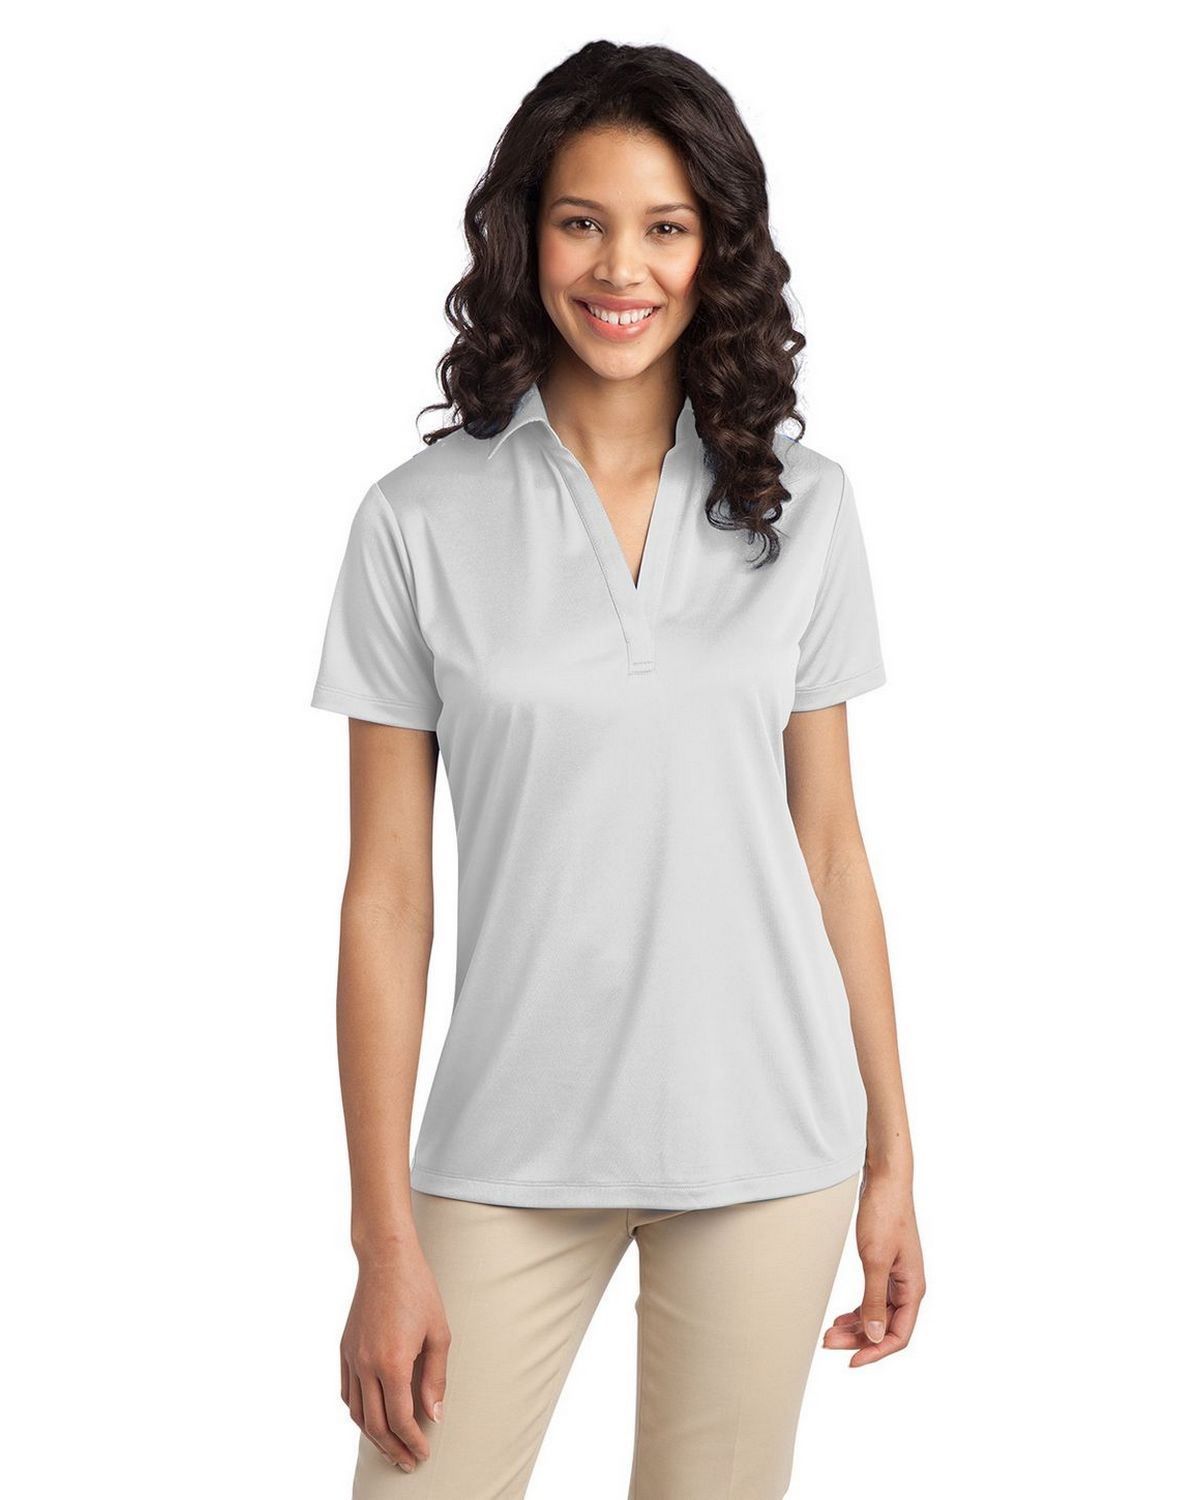 cc918a30 Buy Port Authority L540 Ladies Silk Touch Performance Polo